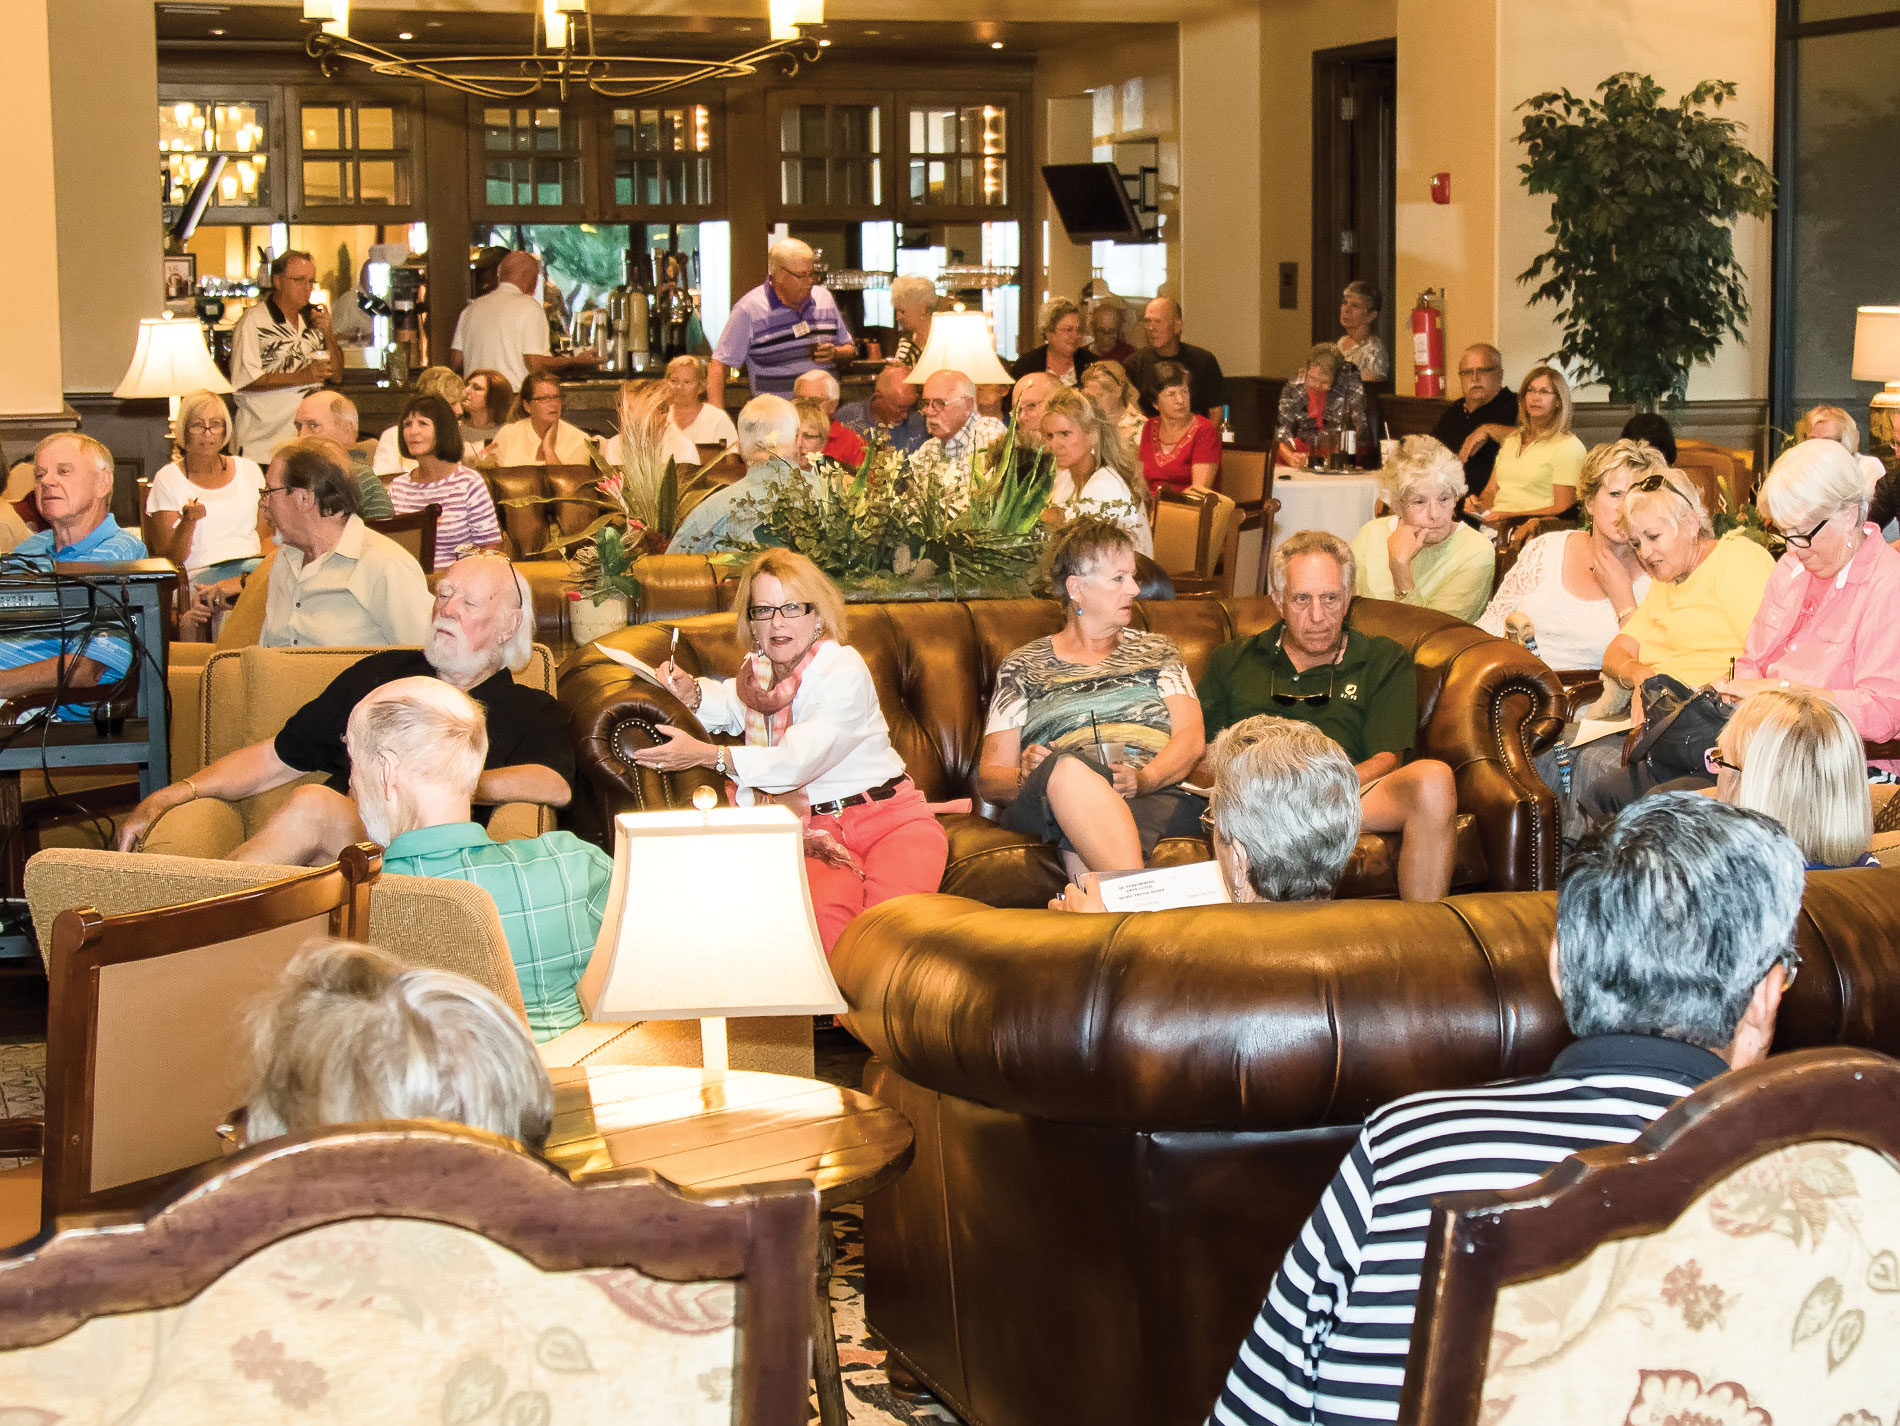 More than 90 PAG supporters filled the Madera Clubhouse on Musical Trivia Night; photo by Jeff Krueger